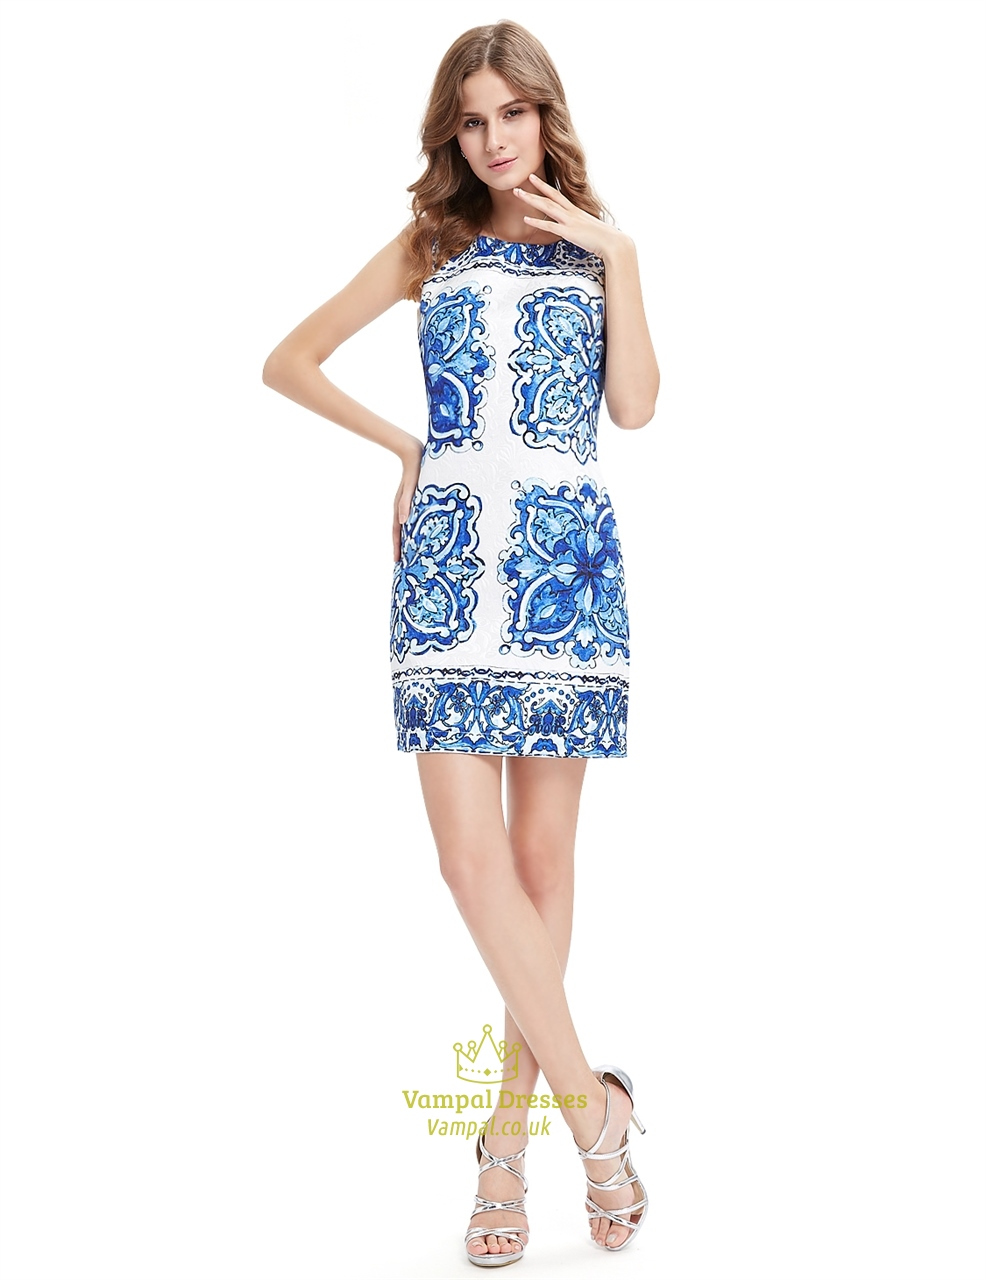 white short bodycon mini summer dress with blue floral